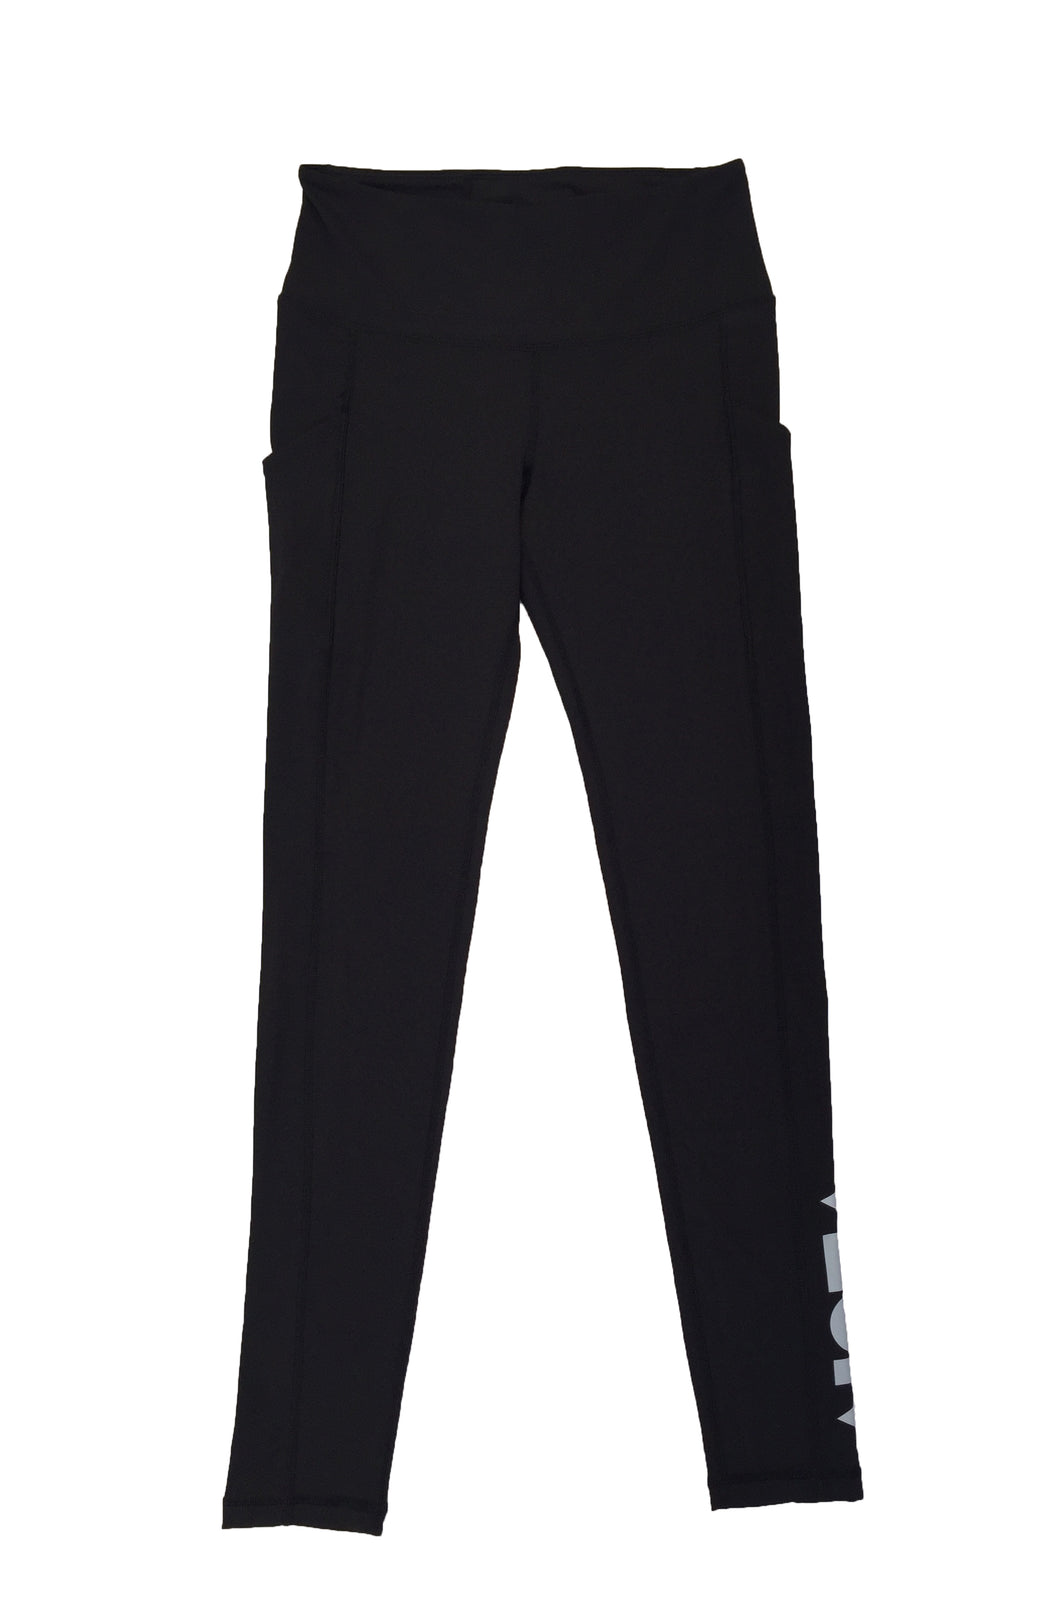 Black fitted womenʻs leggings for workout, aerobics or surfing with a silver Aloha Shapes® logo on bottom outside of left leg